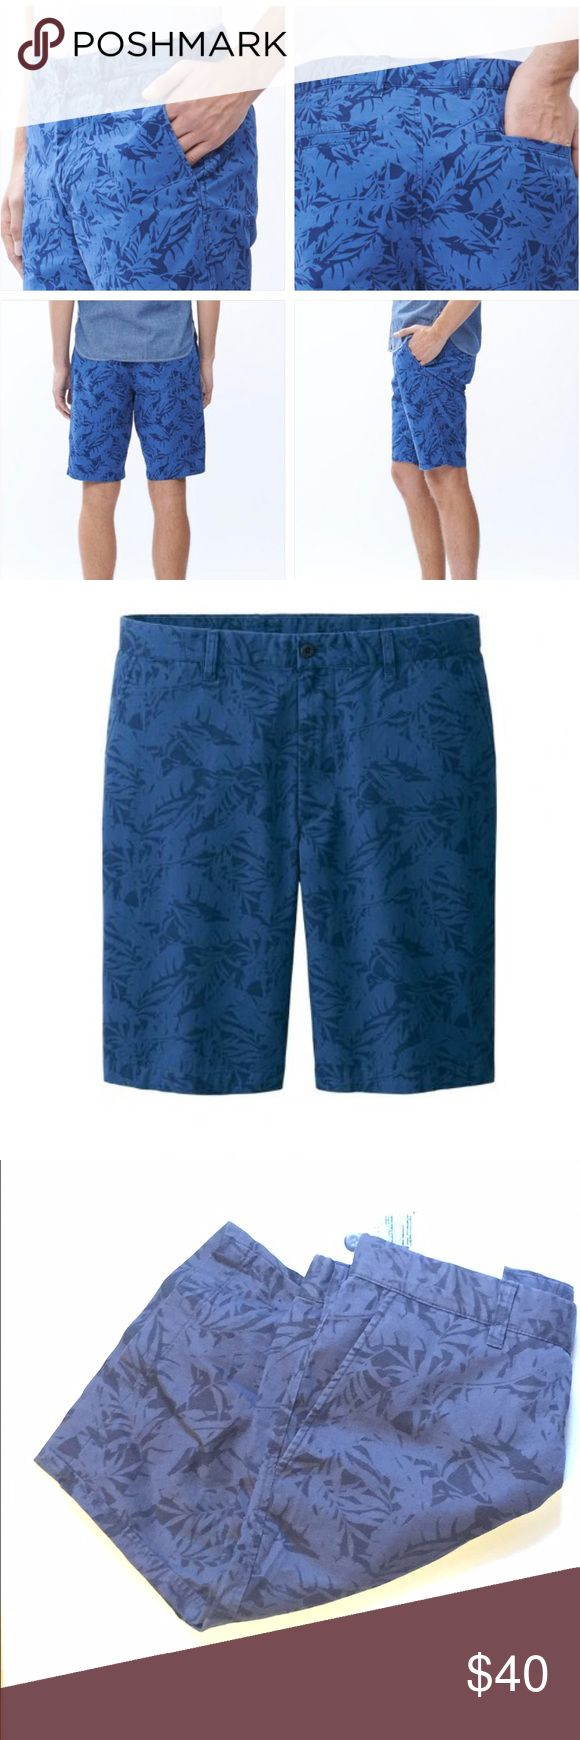 NEW WITH TAGS Men's Printed Chino Shorts Men's printed chino shorts size medium. Made with 100% cotton twill with a crisp texture and soft to the touch finish. Tropical print. These bags will make you want to your bags and get ready for vacation!  100% Cotton ✨✨✨🙋‍♂️ Free gift with bundles. Offers accepted. Bundle and save!  Lots of mens clothing available. ✨✨✨ Uniqlo Shorts Flat Front